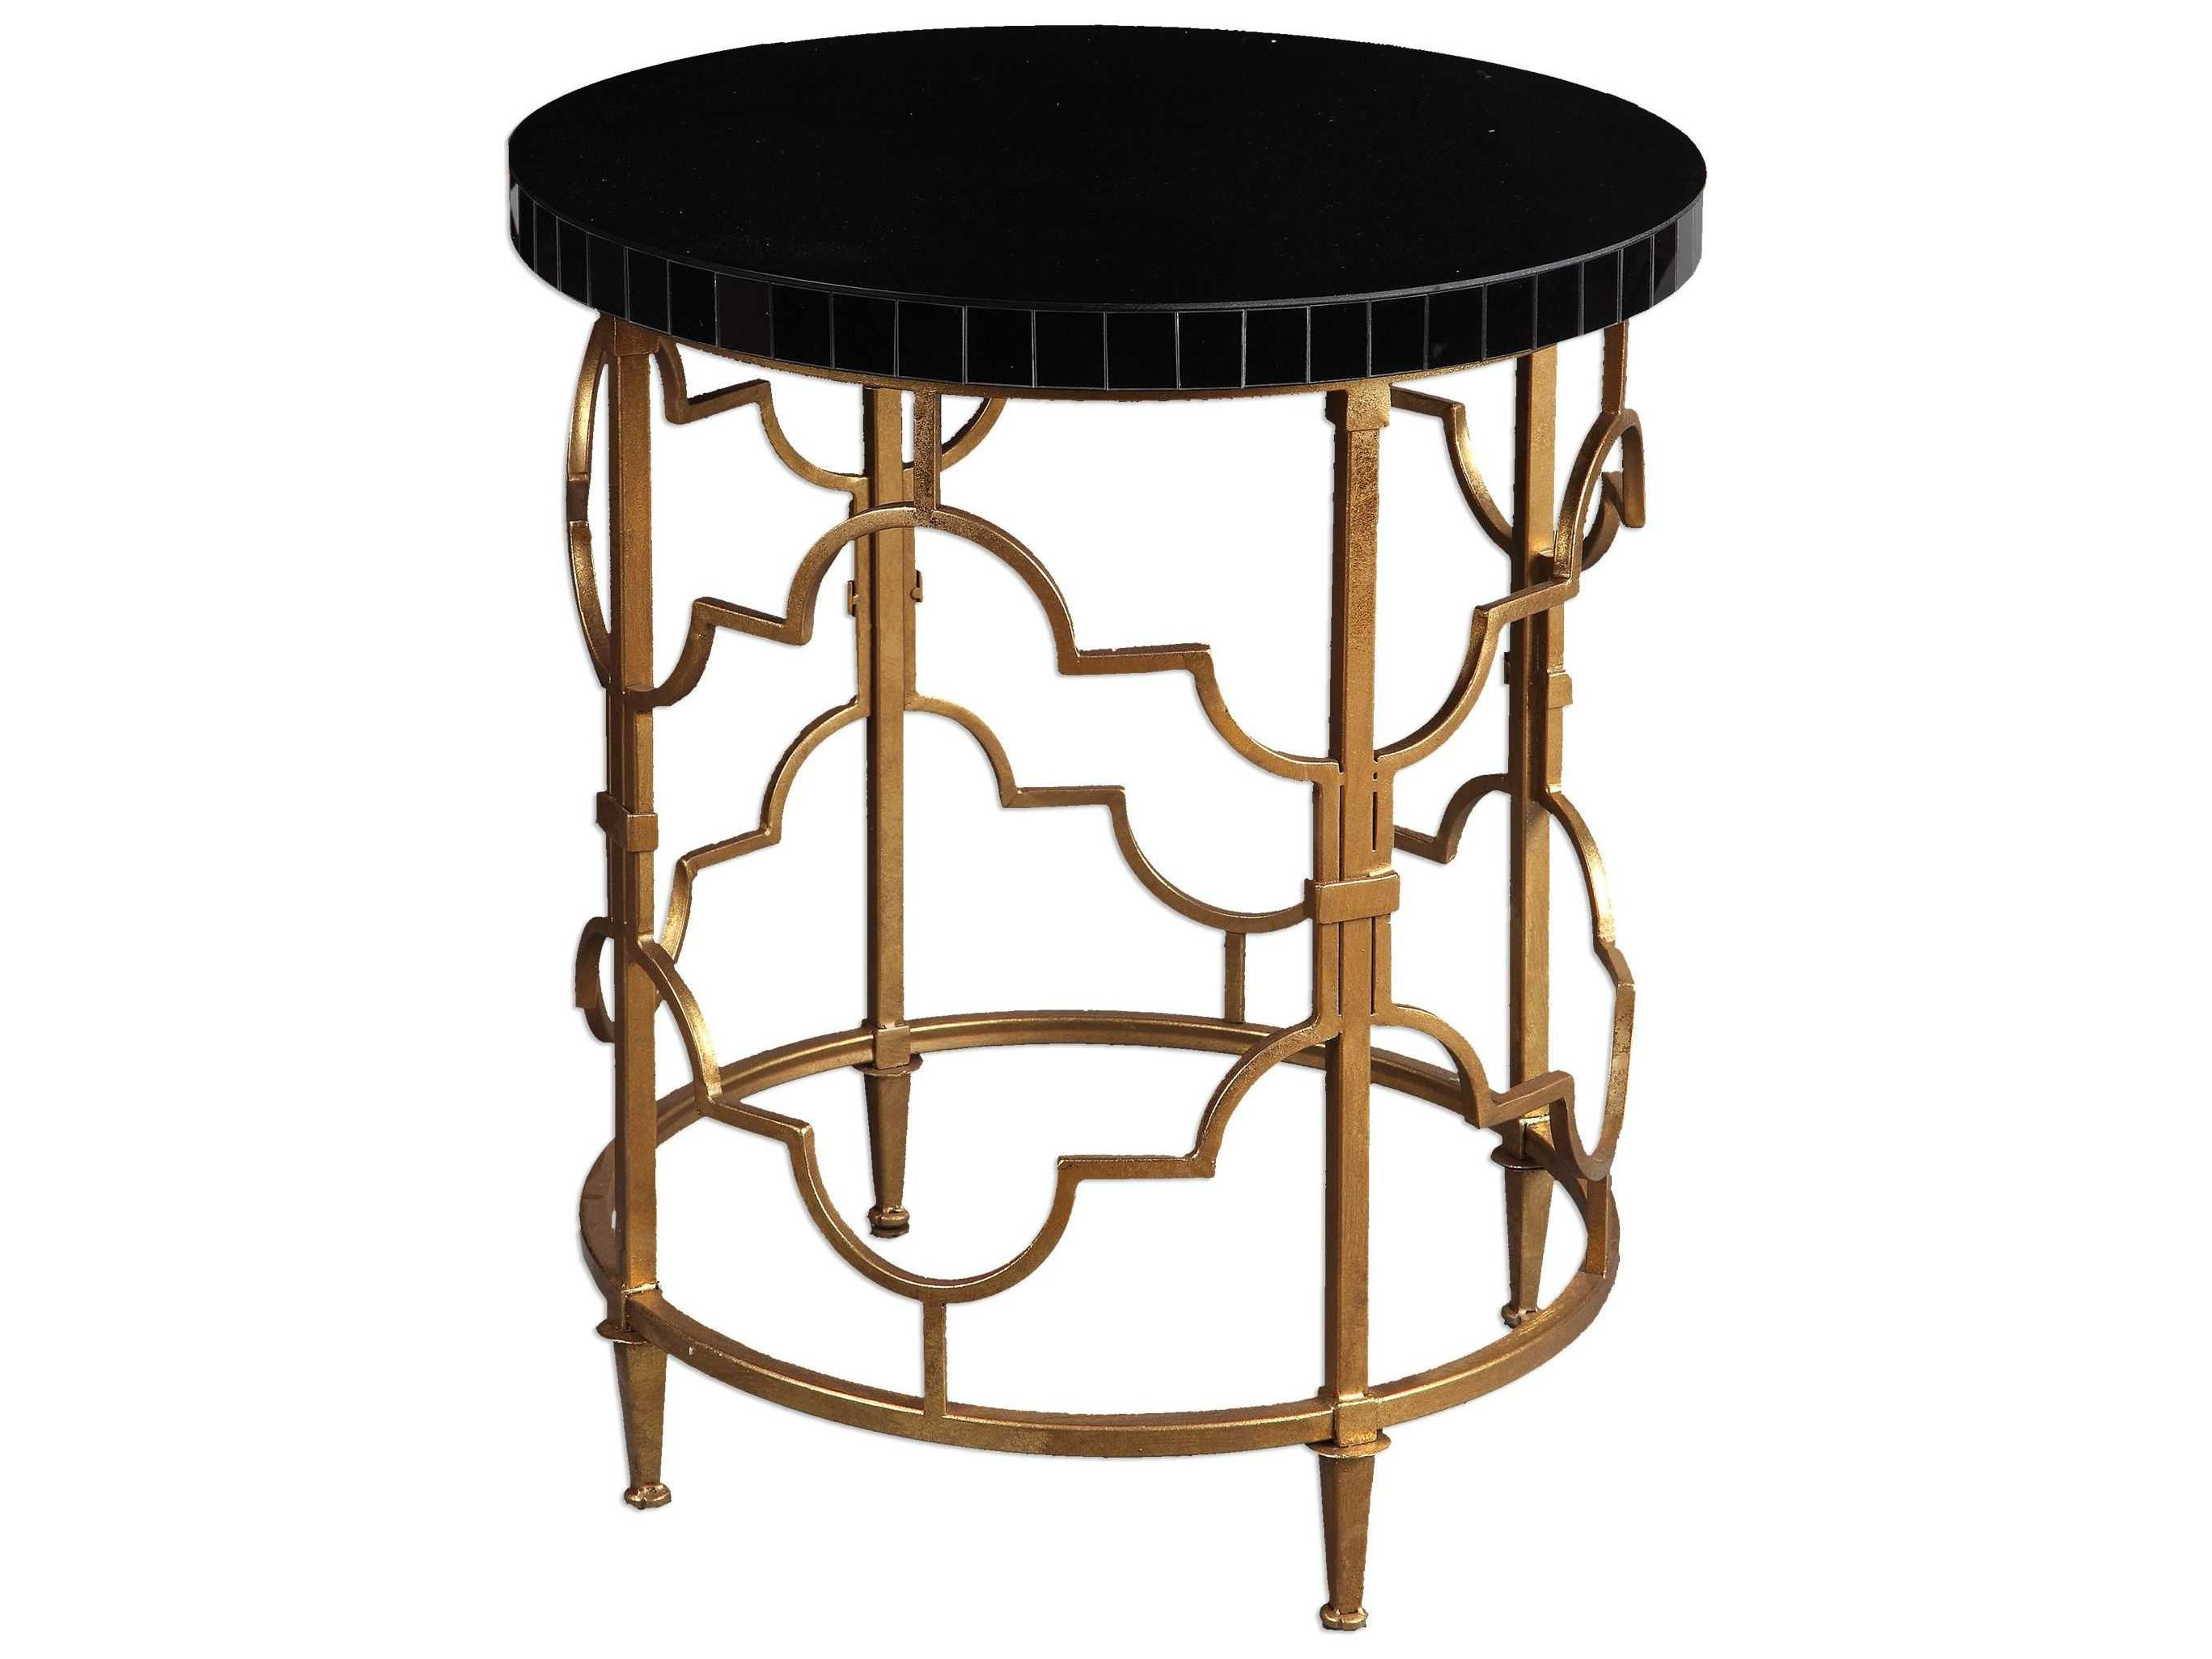 Uttermost mosi gold black 22 39 round accent table ut24606 for Black round end table